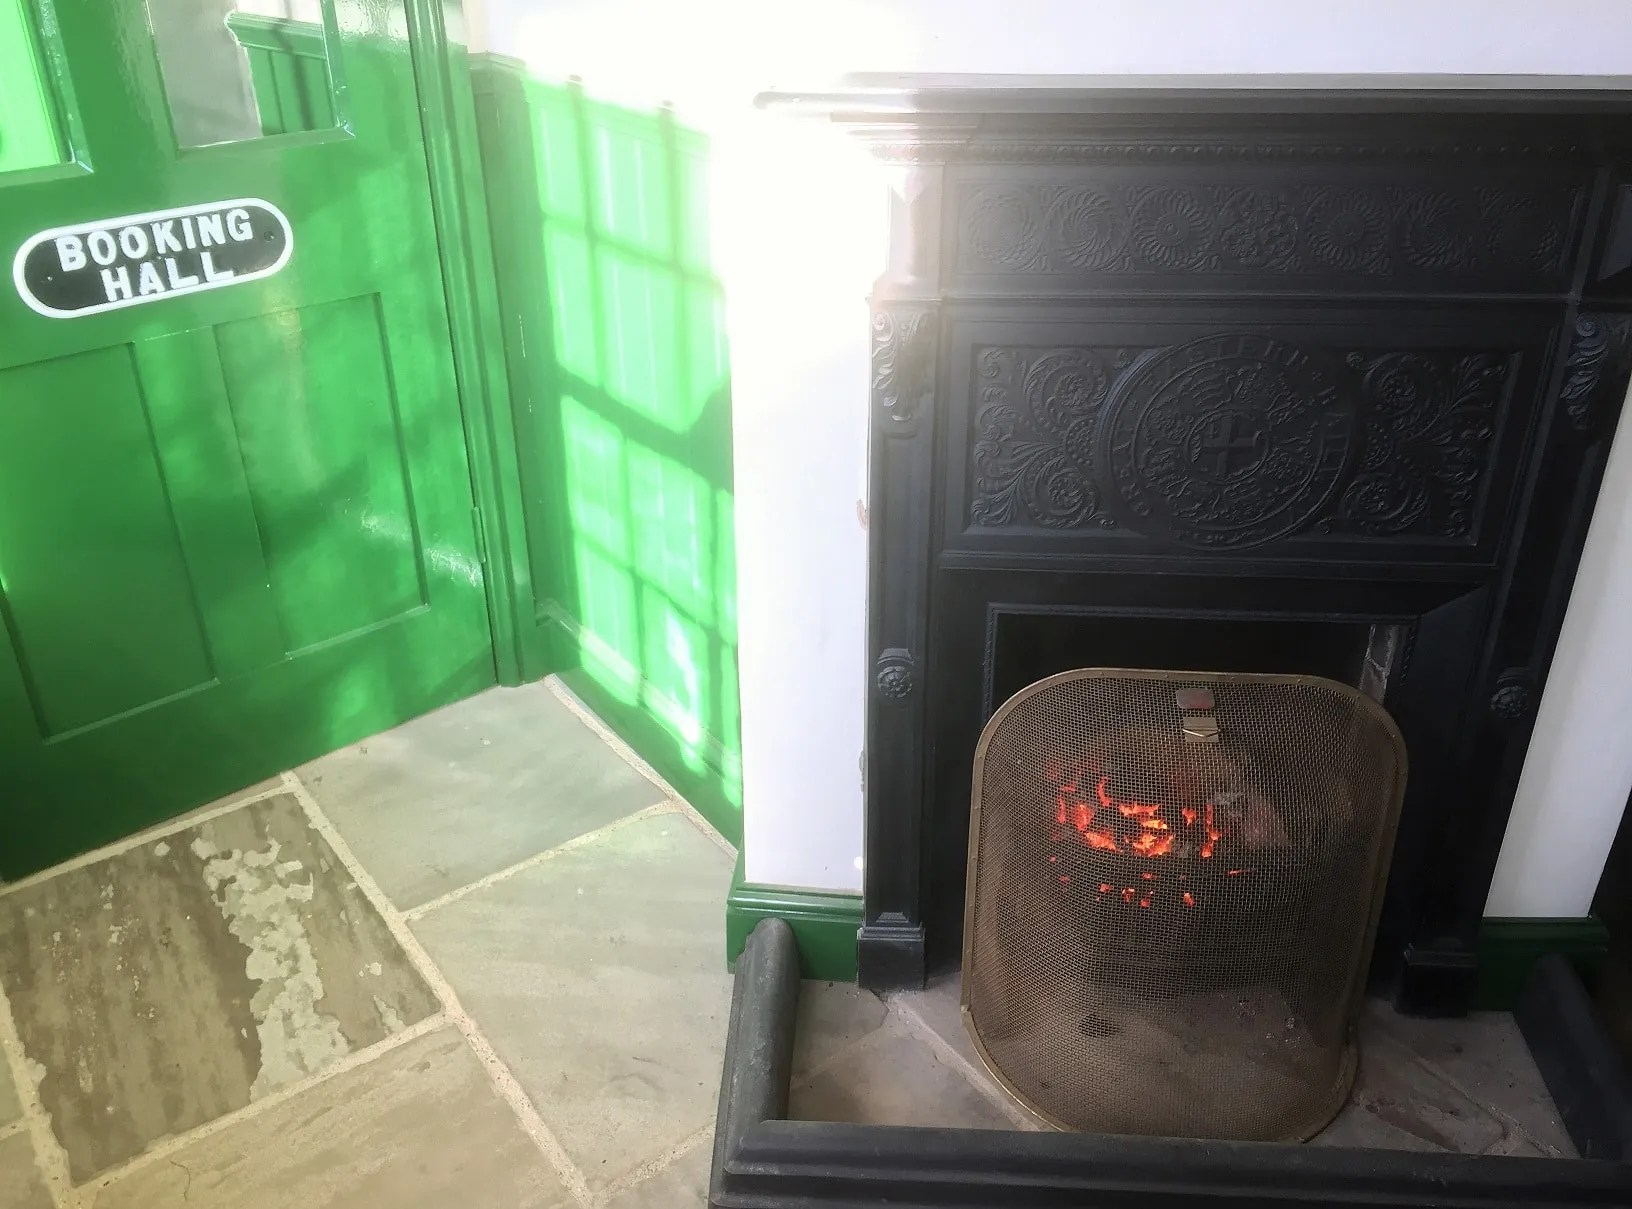 railway station booking hall cosy fire